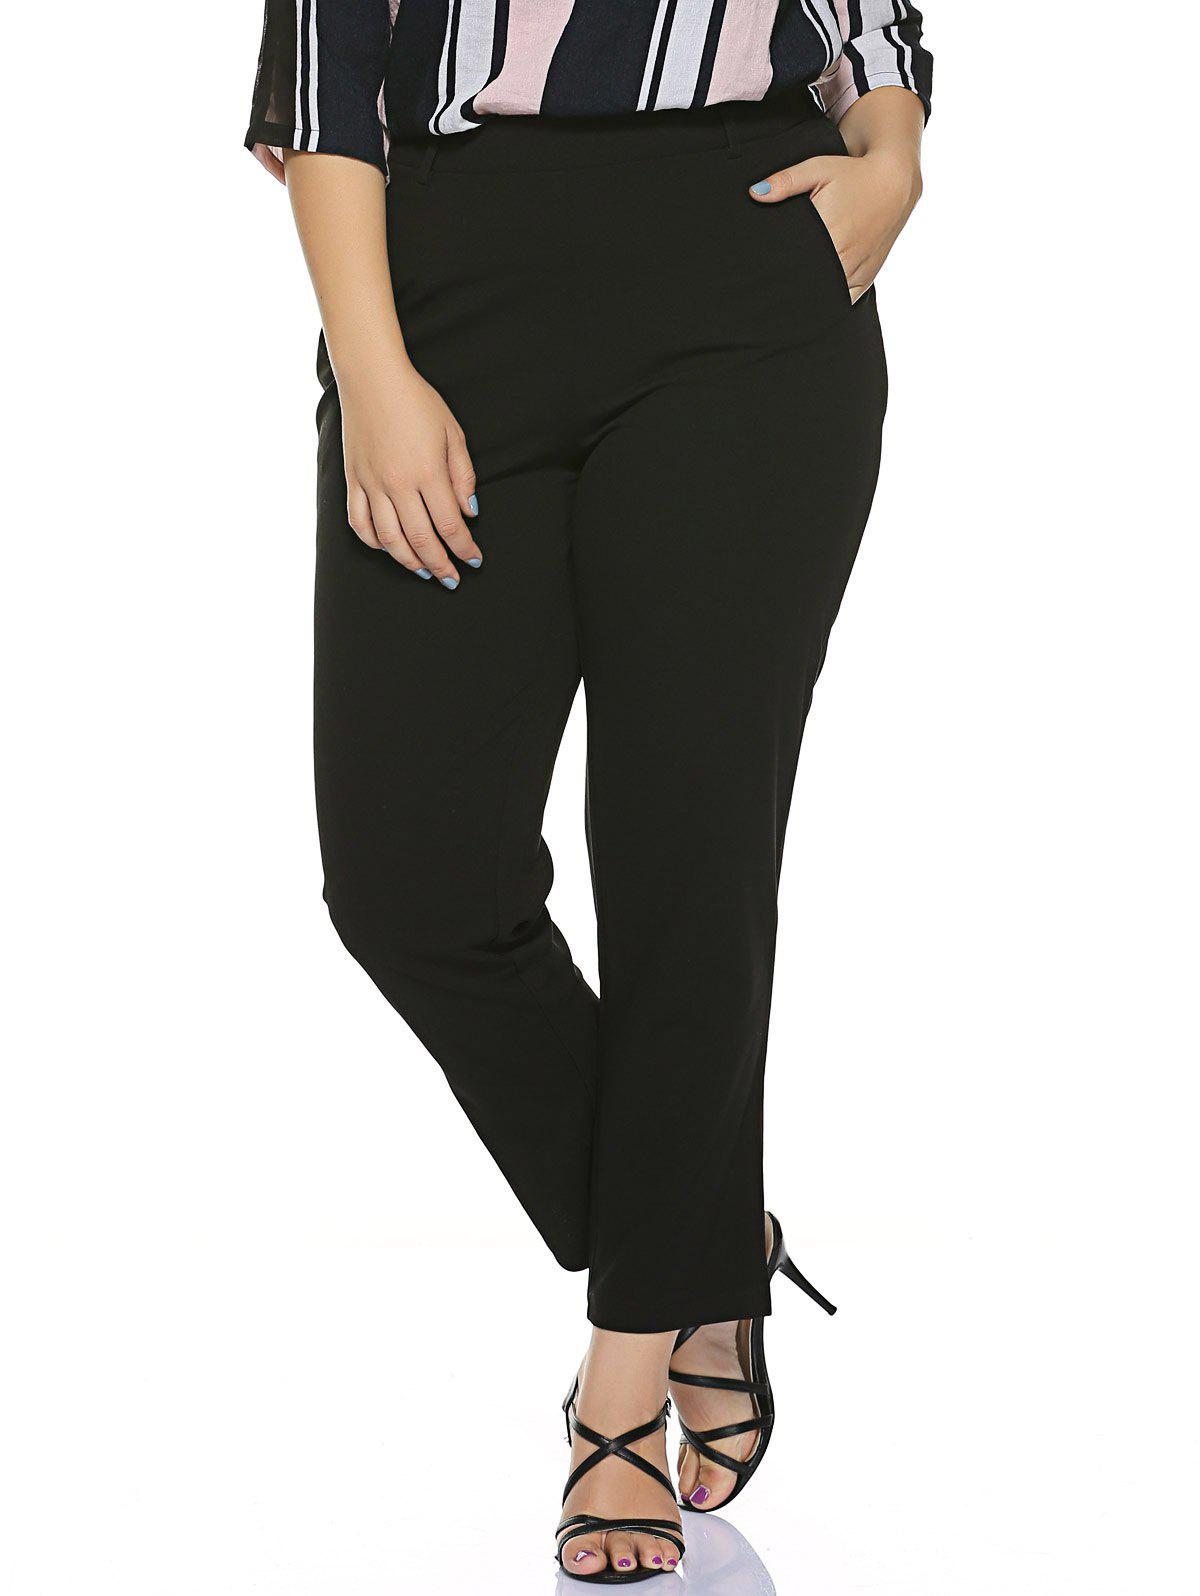 Plus Size Stretched Skinny Fitted Pants - BLACK 5XL